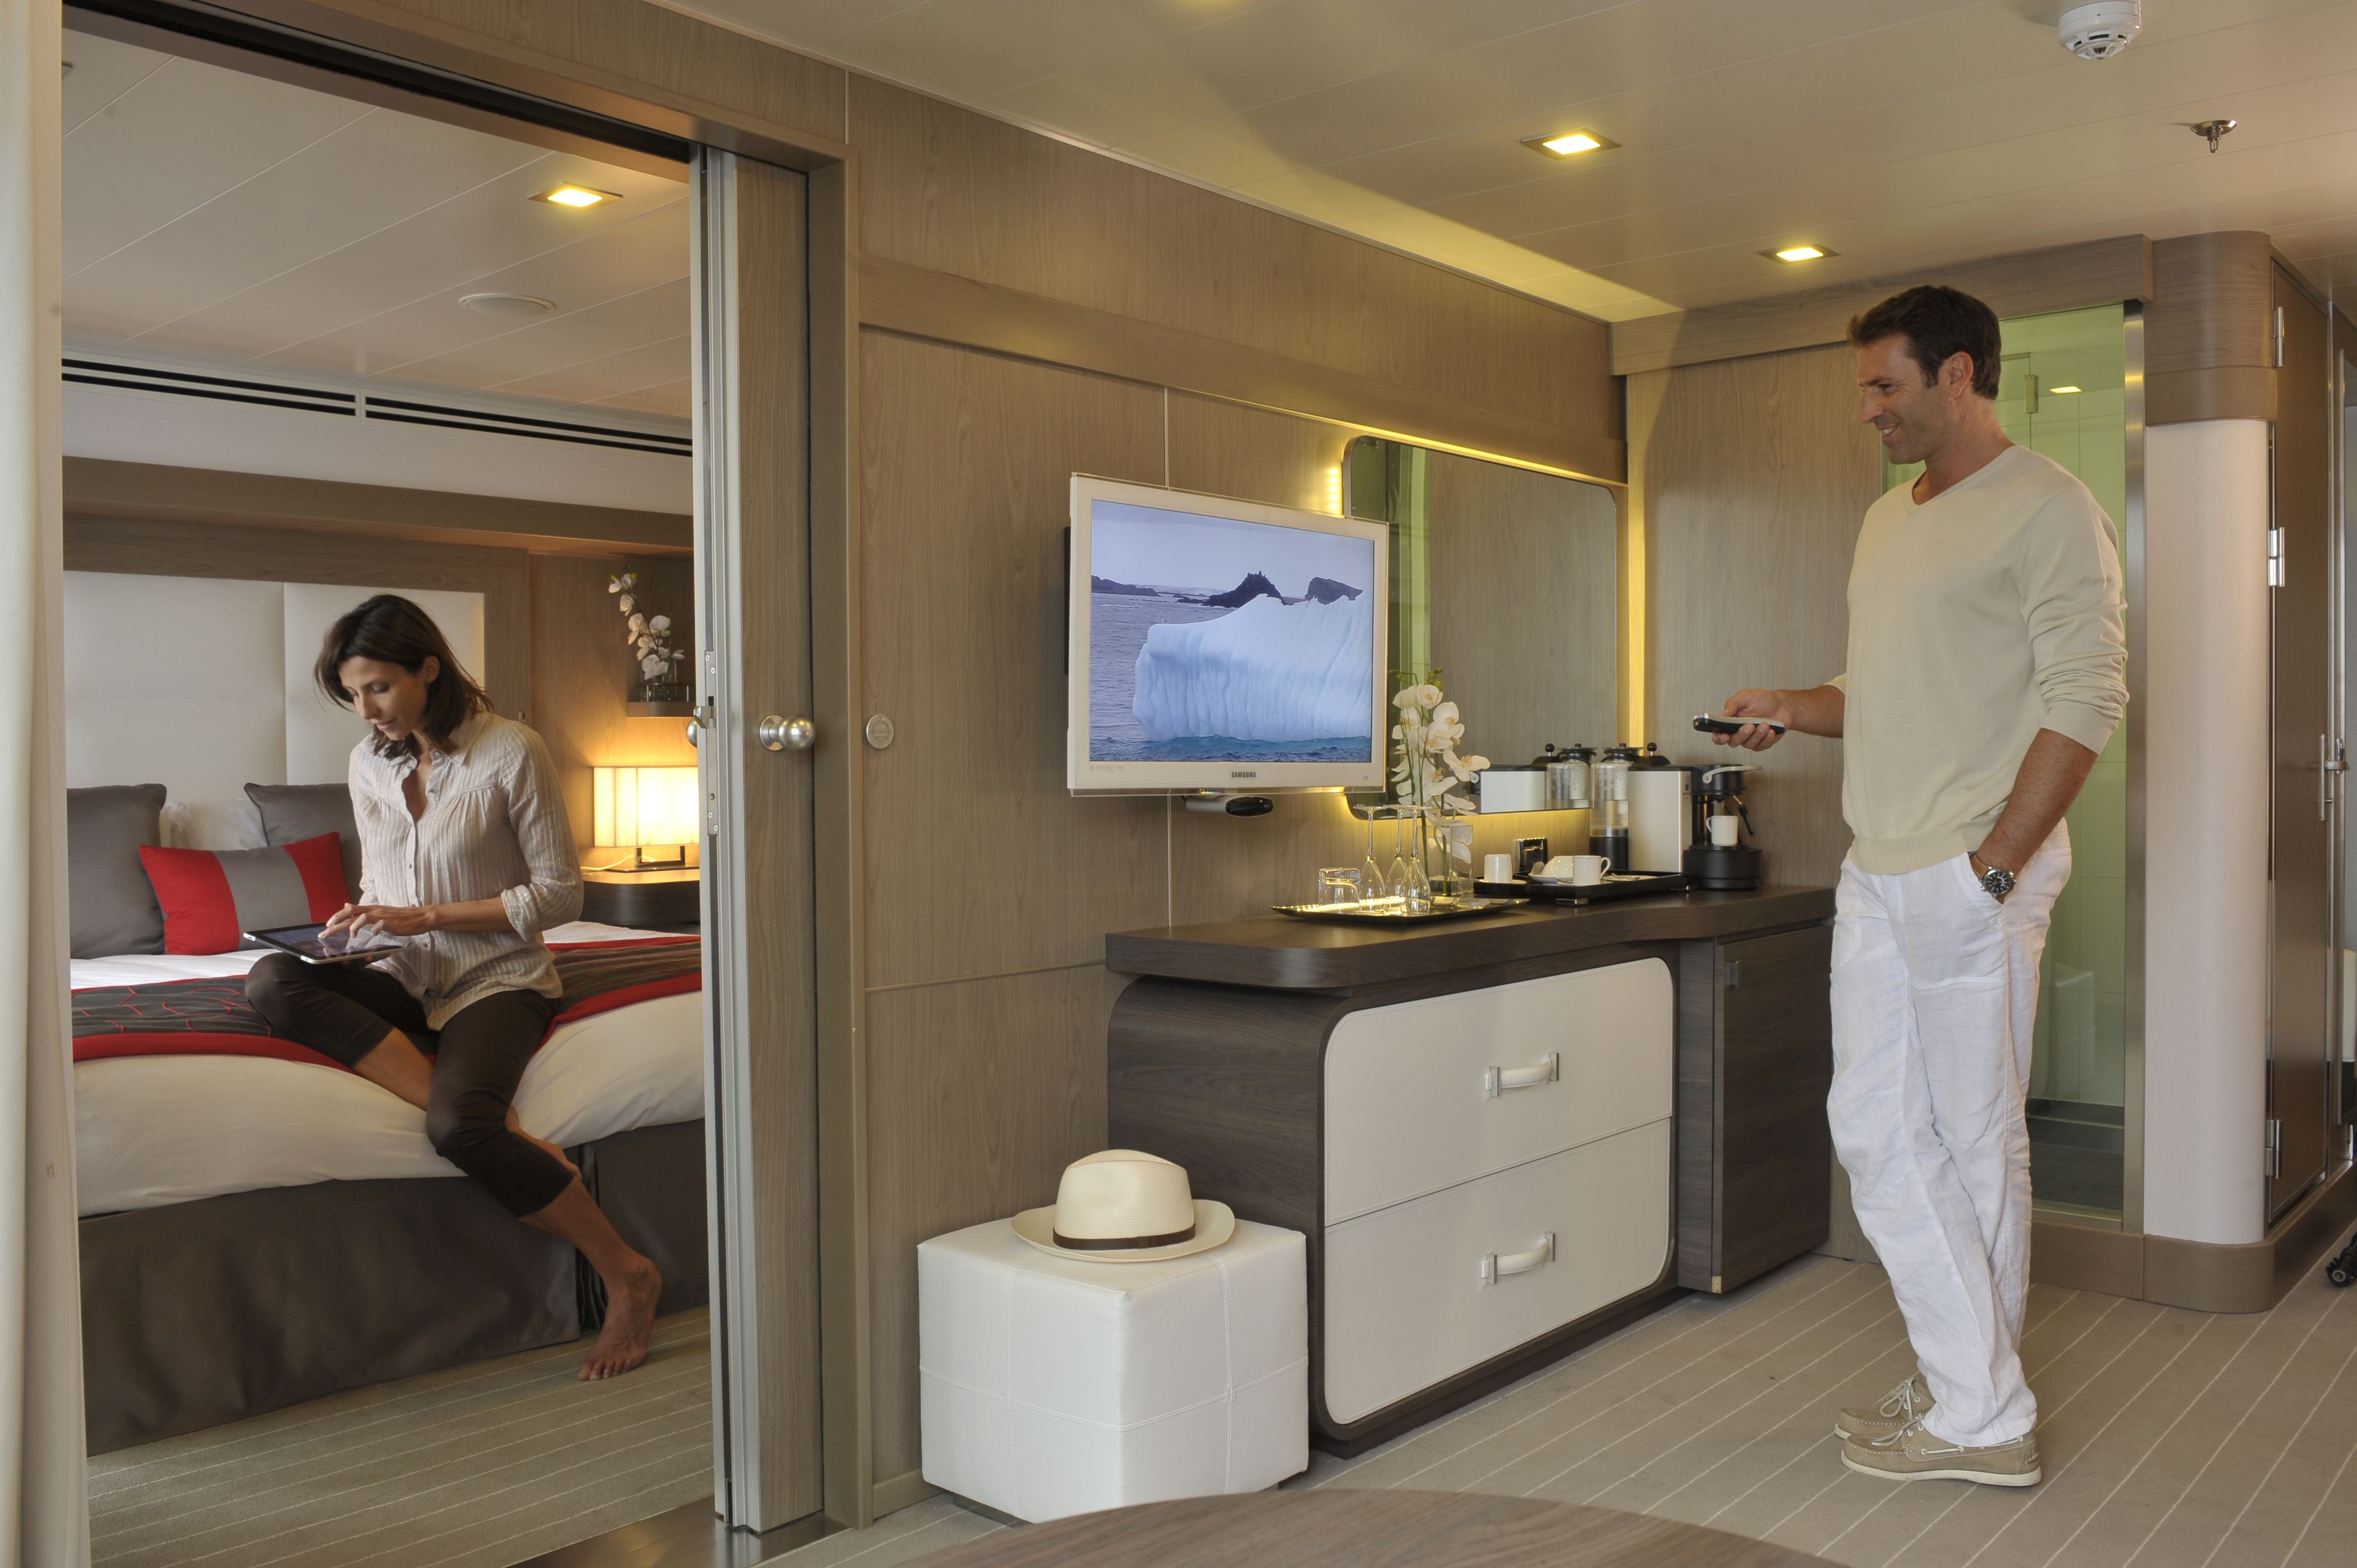 Ponant Le Boreal Accommodation Deluxe Suite 1.JPEG